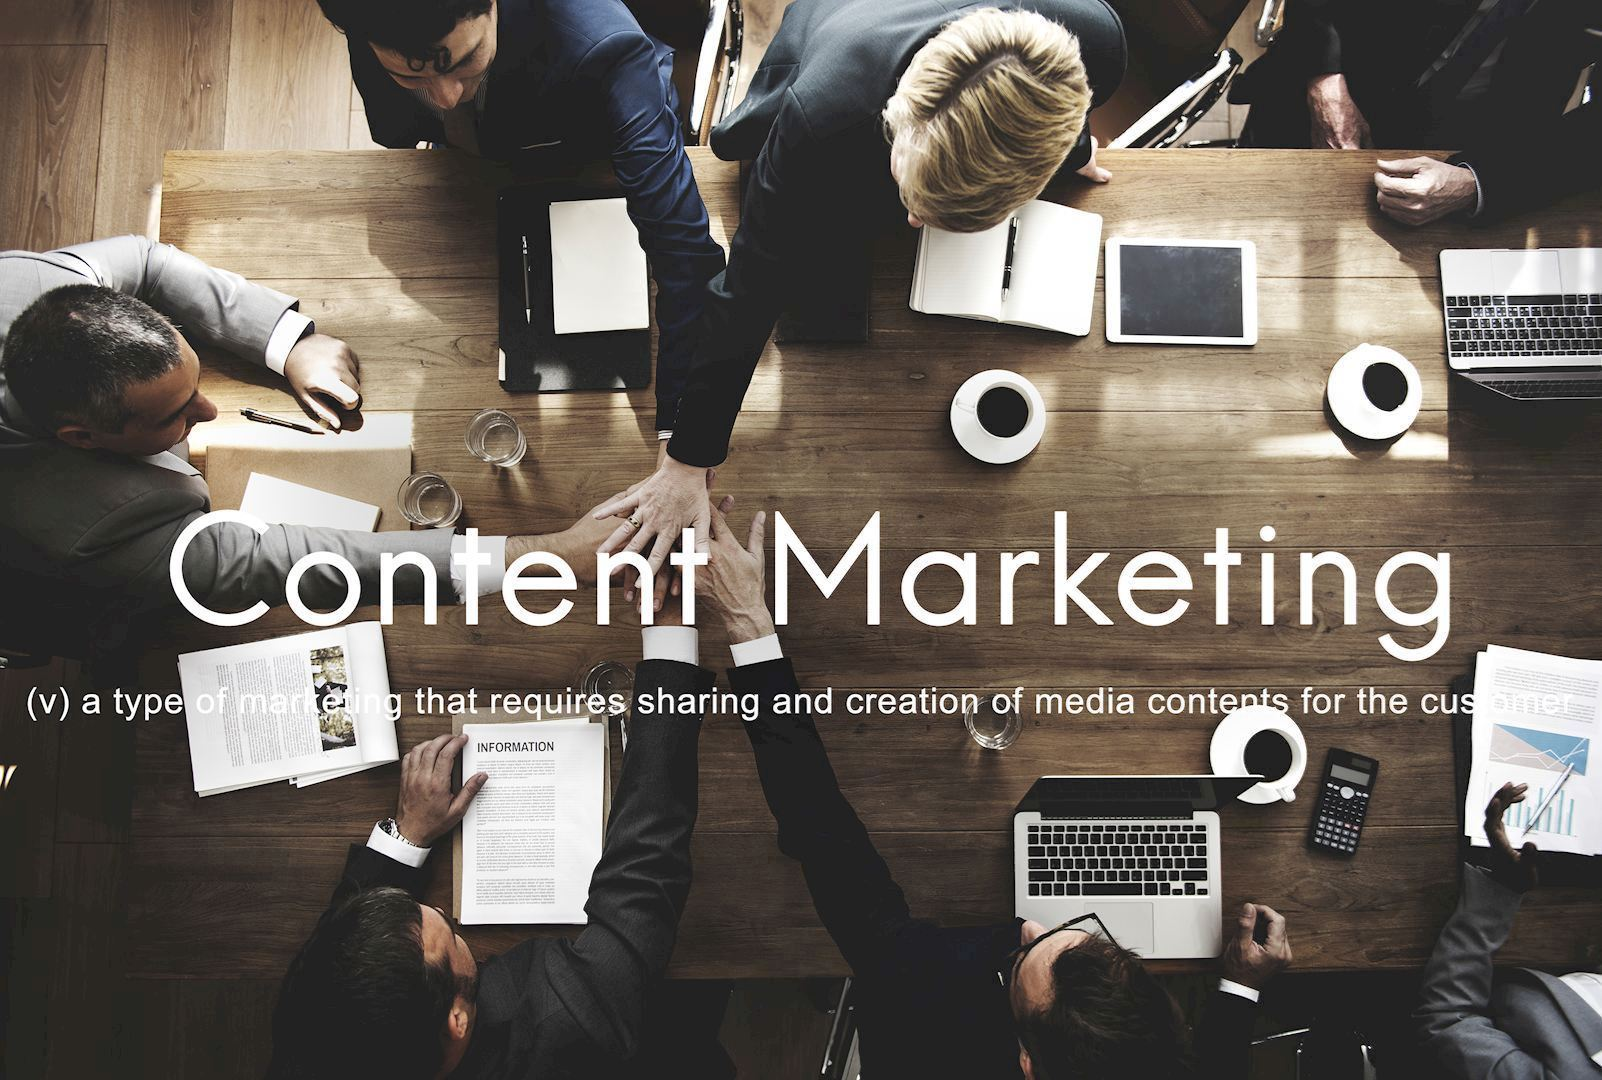 Contentmarketing - Business development voor advocaten (deel 2)